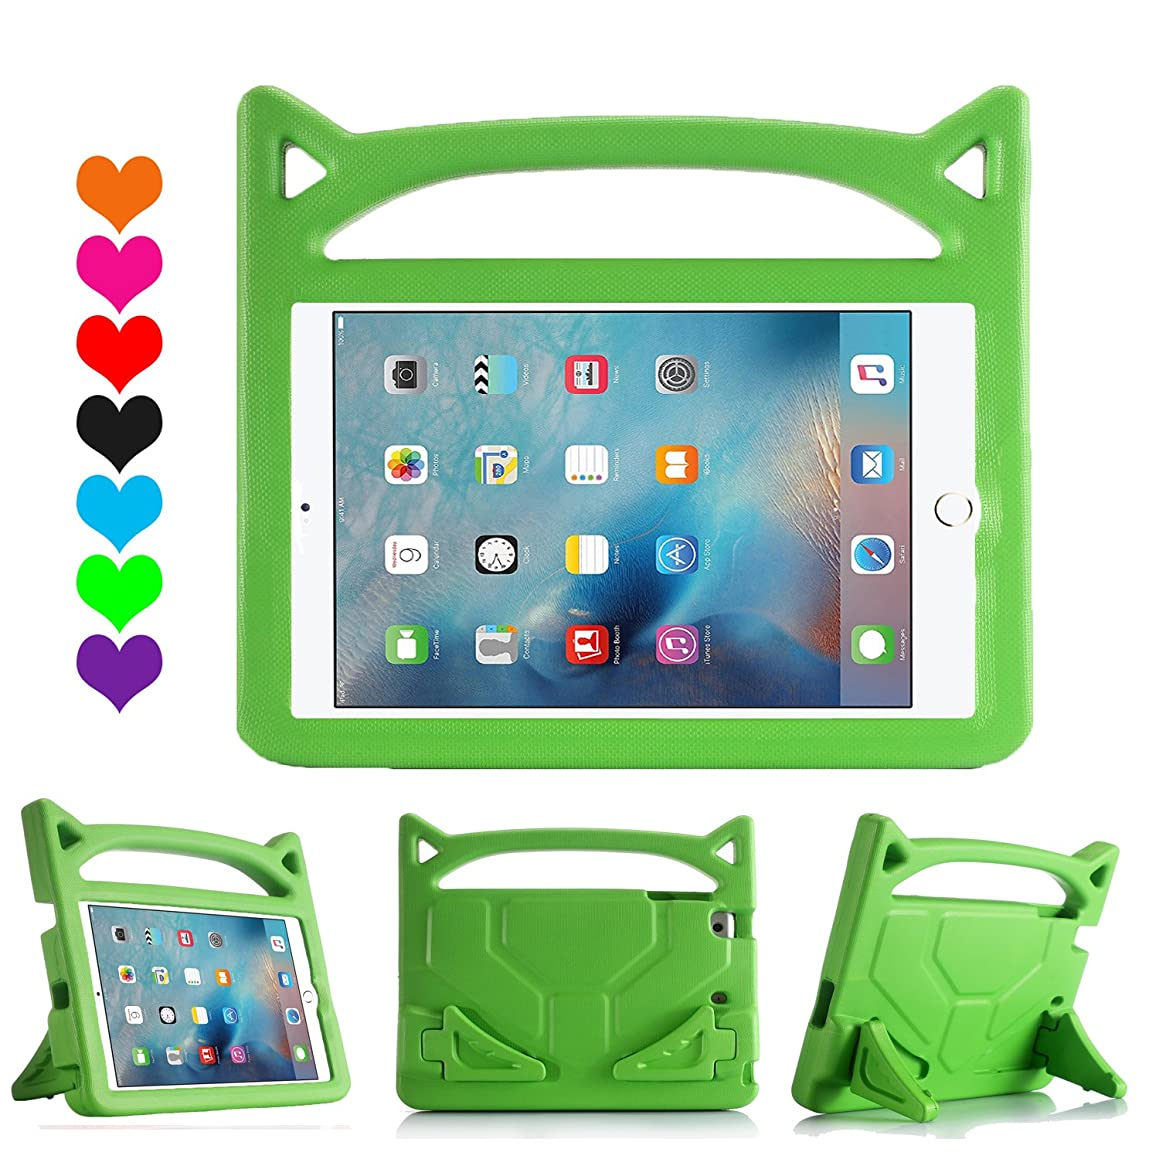 Riaour All-New iPad 9.7 2018/2017 Kids Case, Light Weight Shock Proof Handle Stand Kids Case for iPad 9.7 2017/2018 iPad Air/iPad Air 2/iPad Pro 9.7(Green) s16651163750